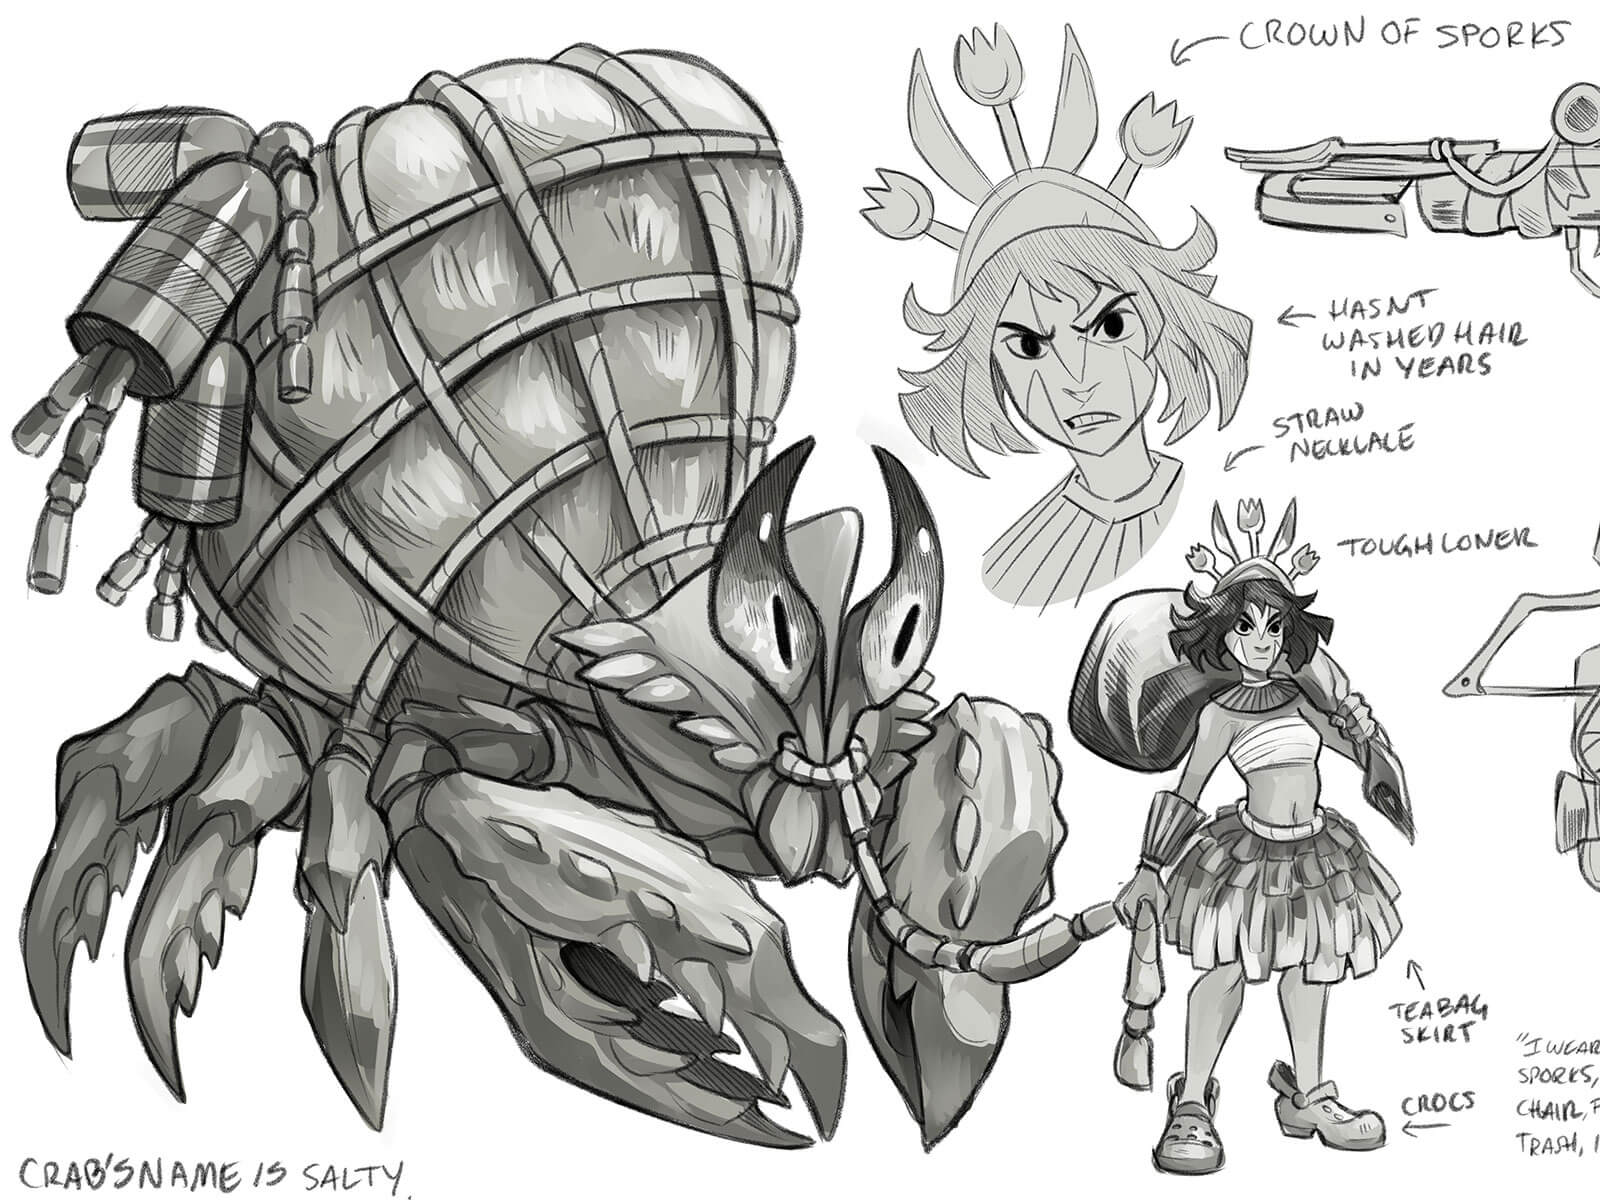 Sketches of a giant, captured hermit crab